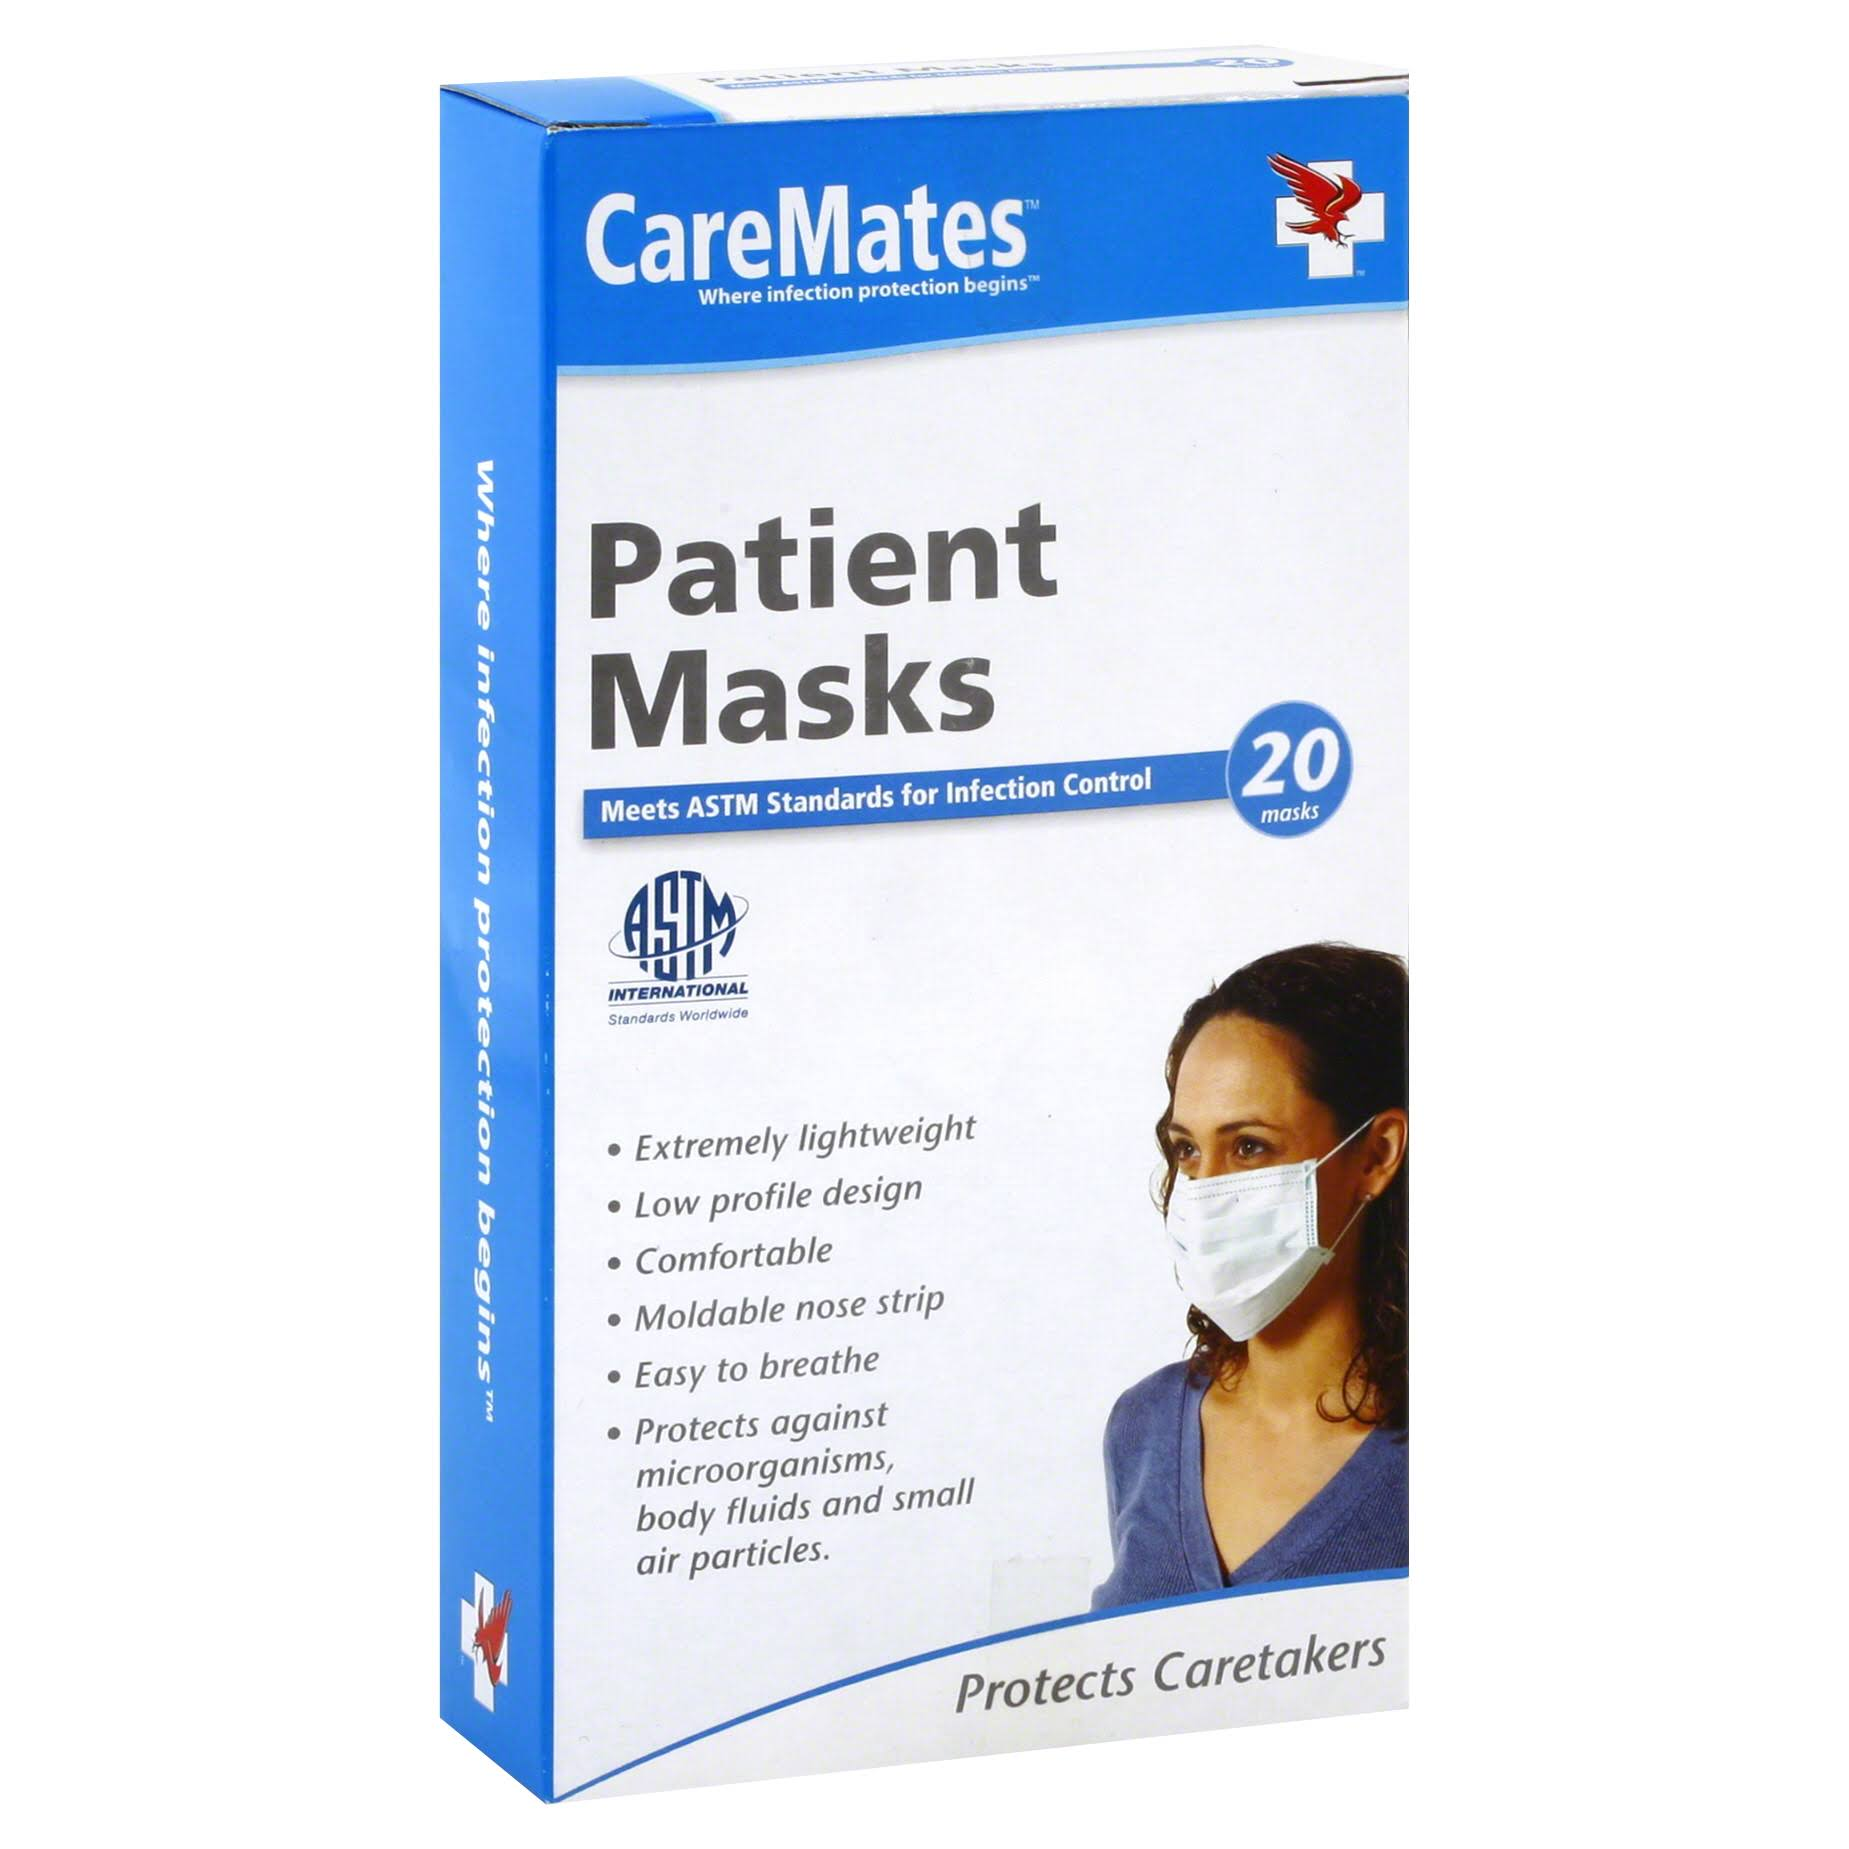 Caremates Surgeon's Mask - 20 Count